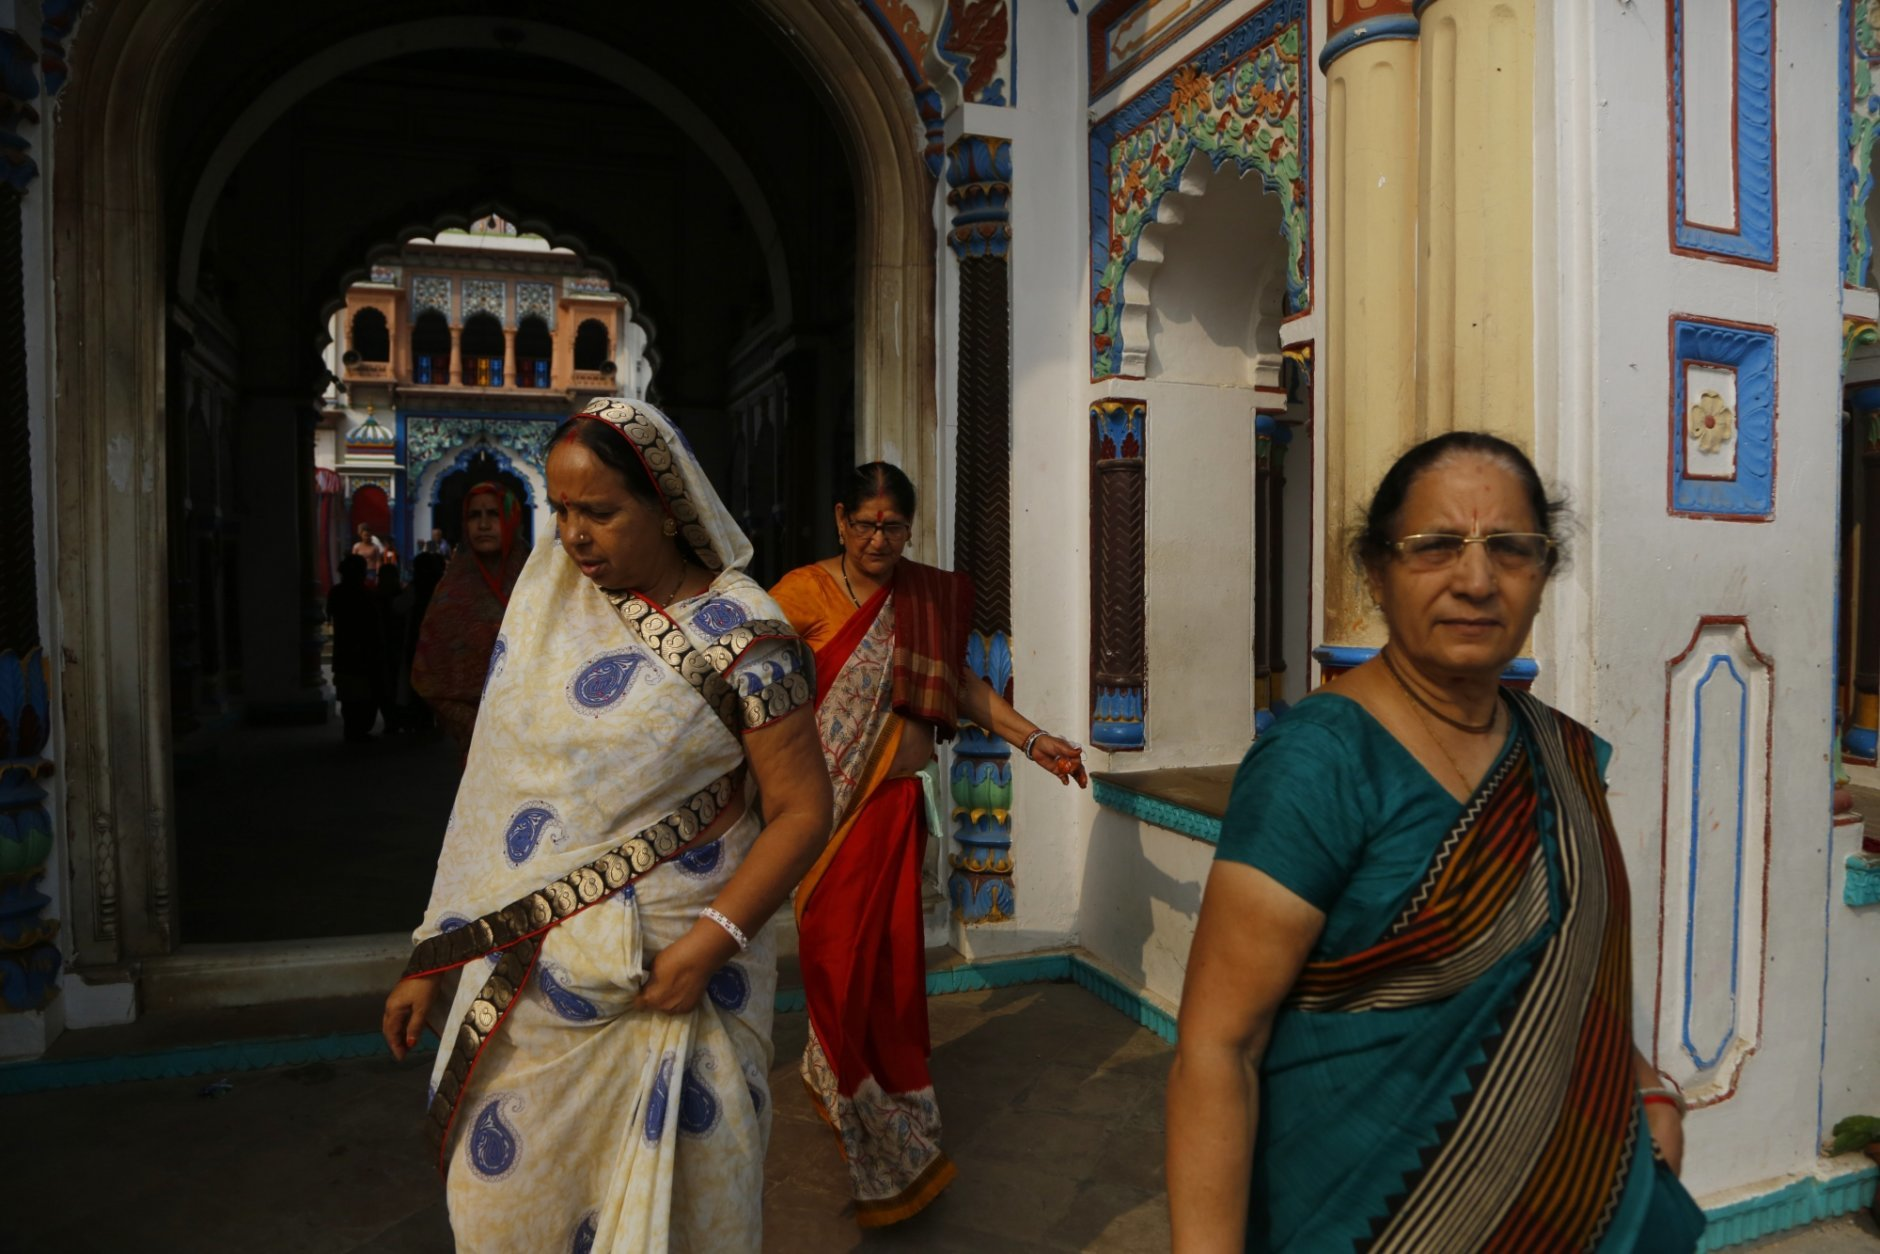 In this Nov. 30, 2018 photo, Indian tourists visit  the Ram Janaki temple in Janakpur, Nepal. Millions of Hindu devotees travel every year to the temple where the Hindu goddess Sita is believed to have been born and later married the Hindu god Ram. A new rail line connecting the 34 kilometers (21 miles) between Janakpur in southeastern Nepal and Jay Nagar in the Indian state of Bihar are raising hopes for new business and pilgrimages. (AP Photo/Niranjan Shrestha)